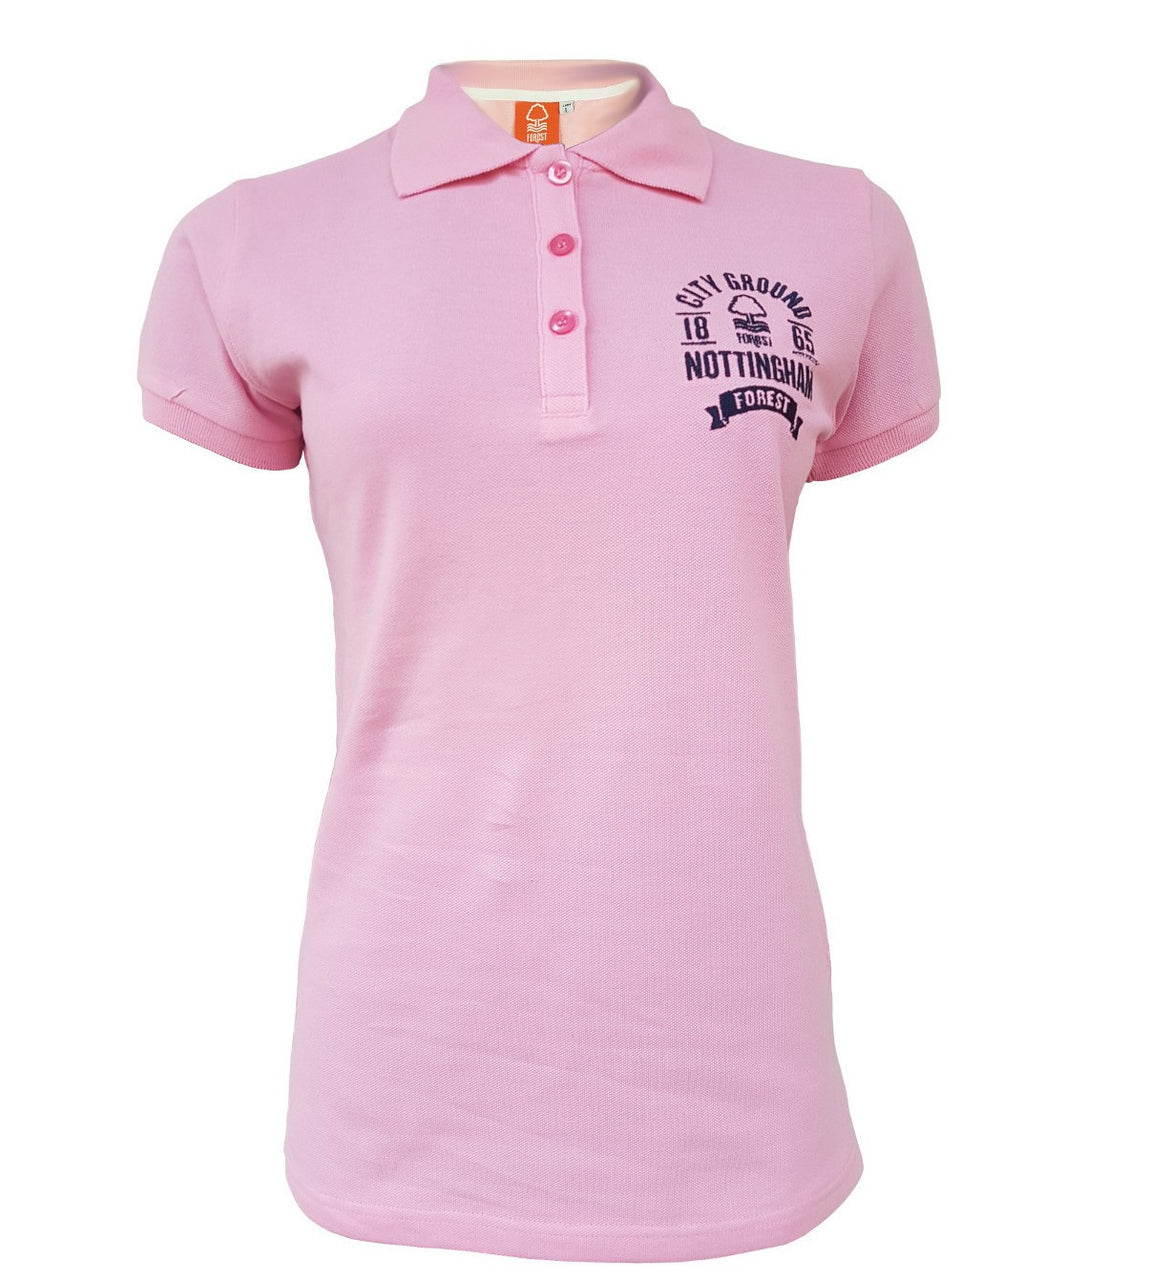 NFFC Womens Pink 1865 Polo